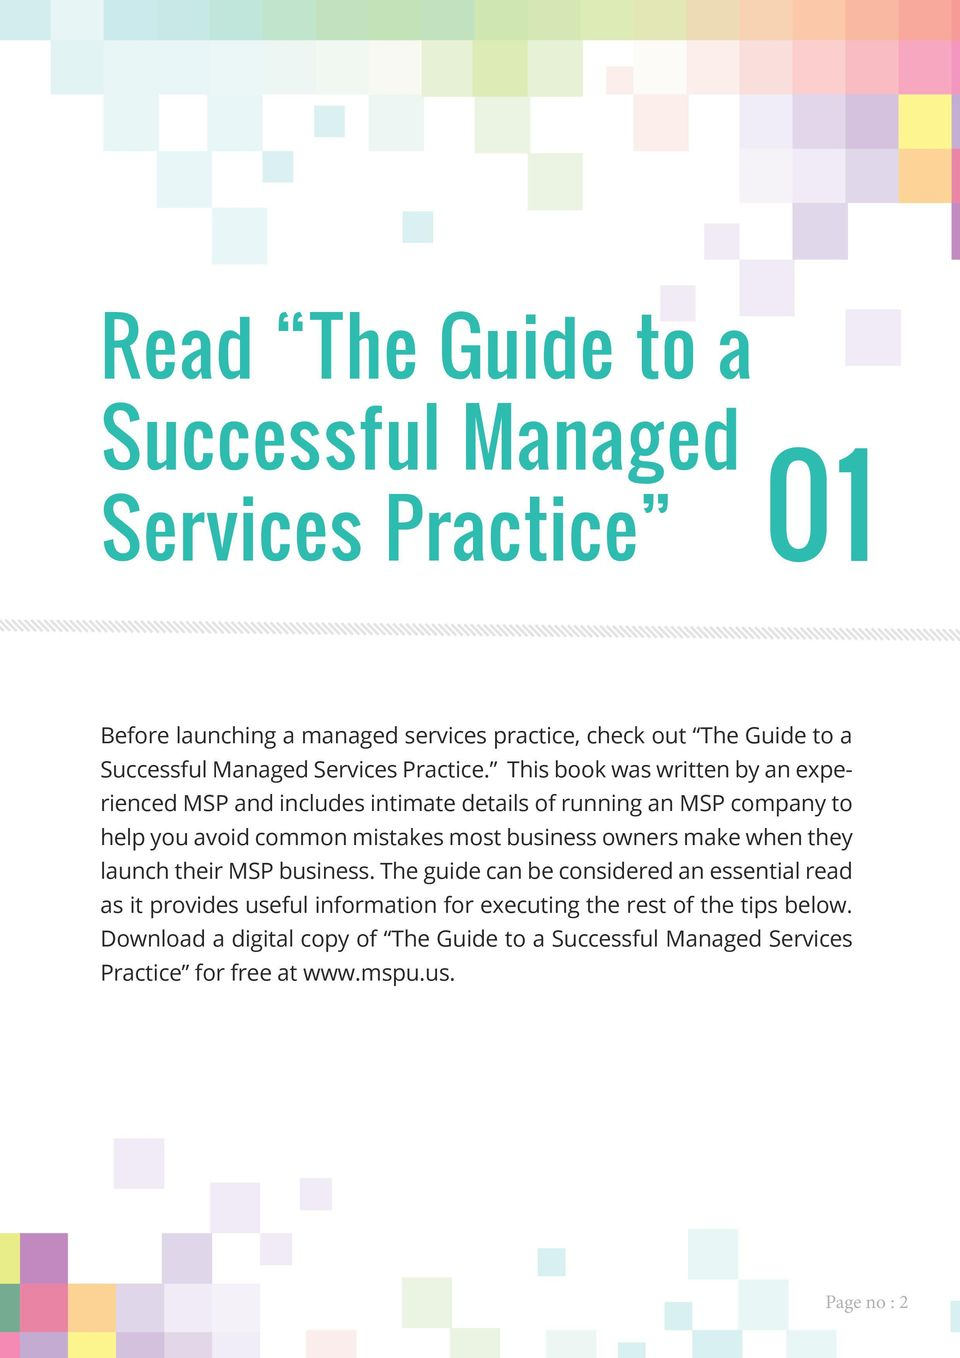 This book was written by an experienced MSP and includes intimate details of running an MSP company to help you avoid common mistakes most business